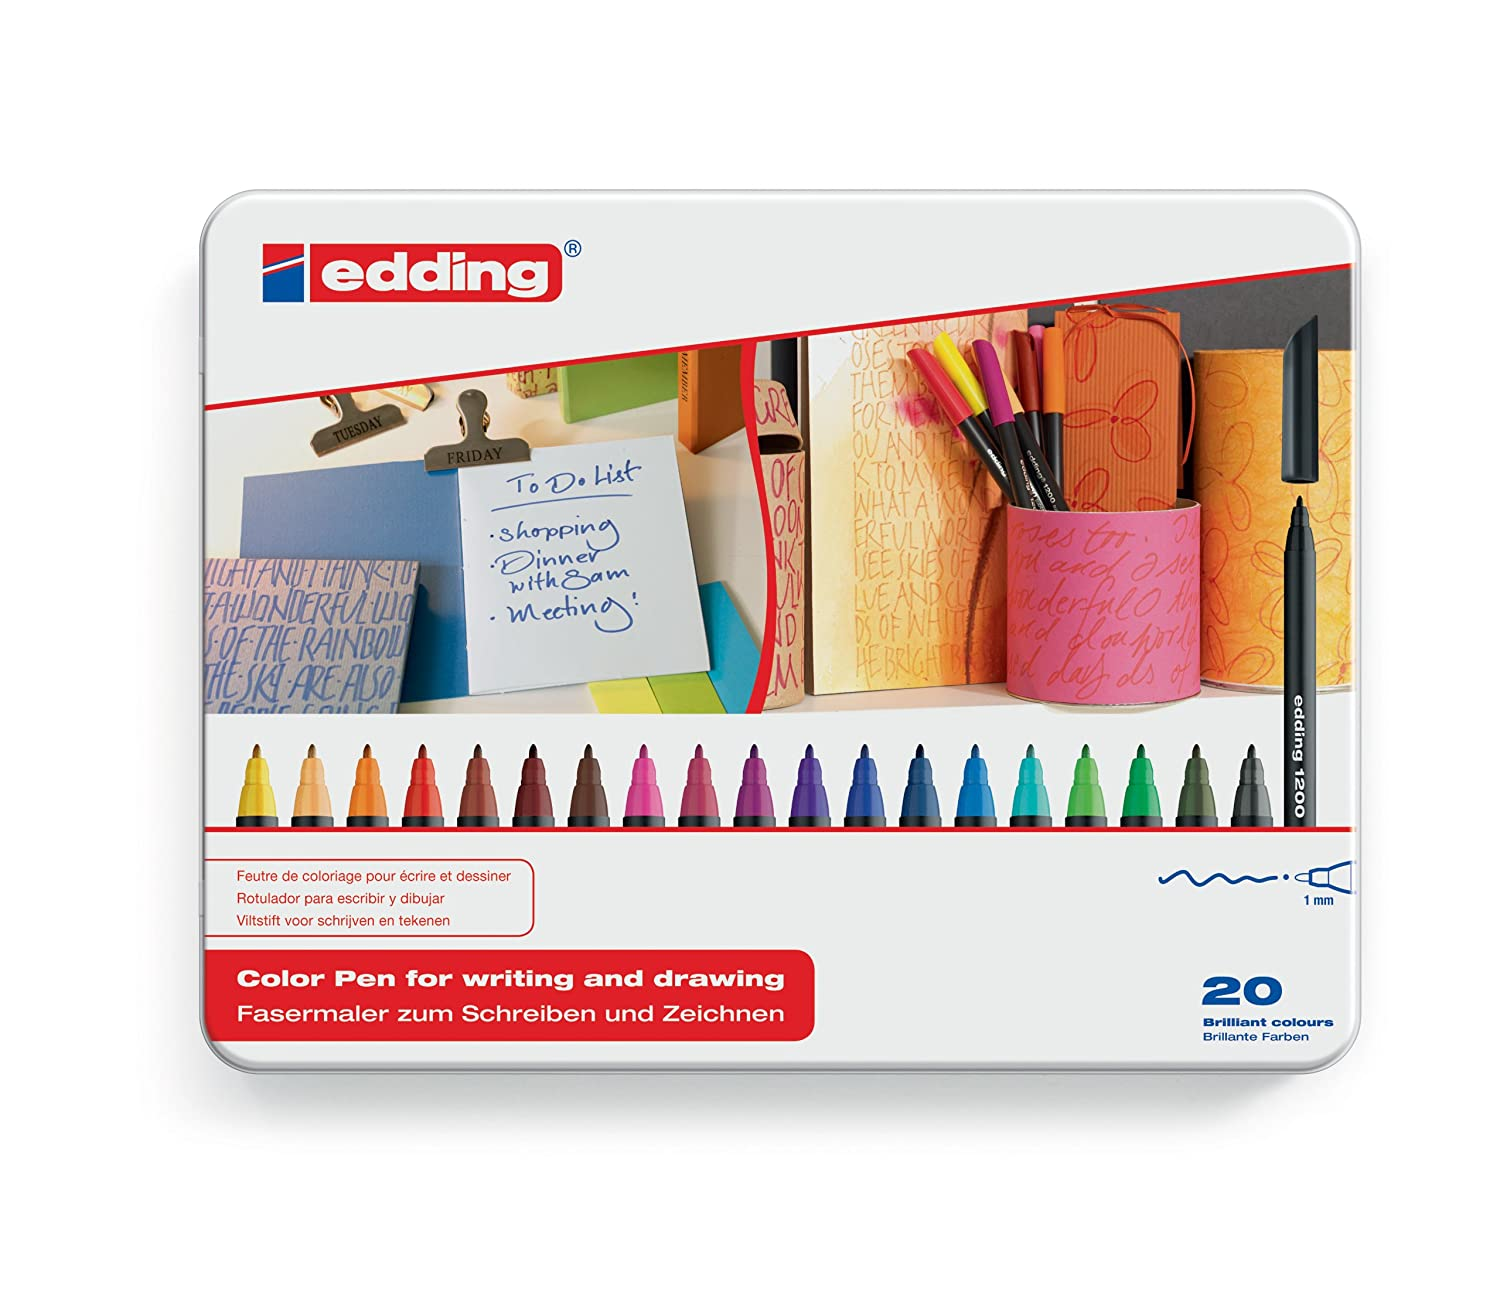 Edding 4-1200-6 Fasermaler 1200 Color Pen, 1-3 mm, 6-er Set, sortiert, metallic 4-1200met-6